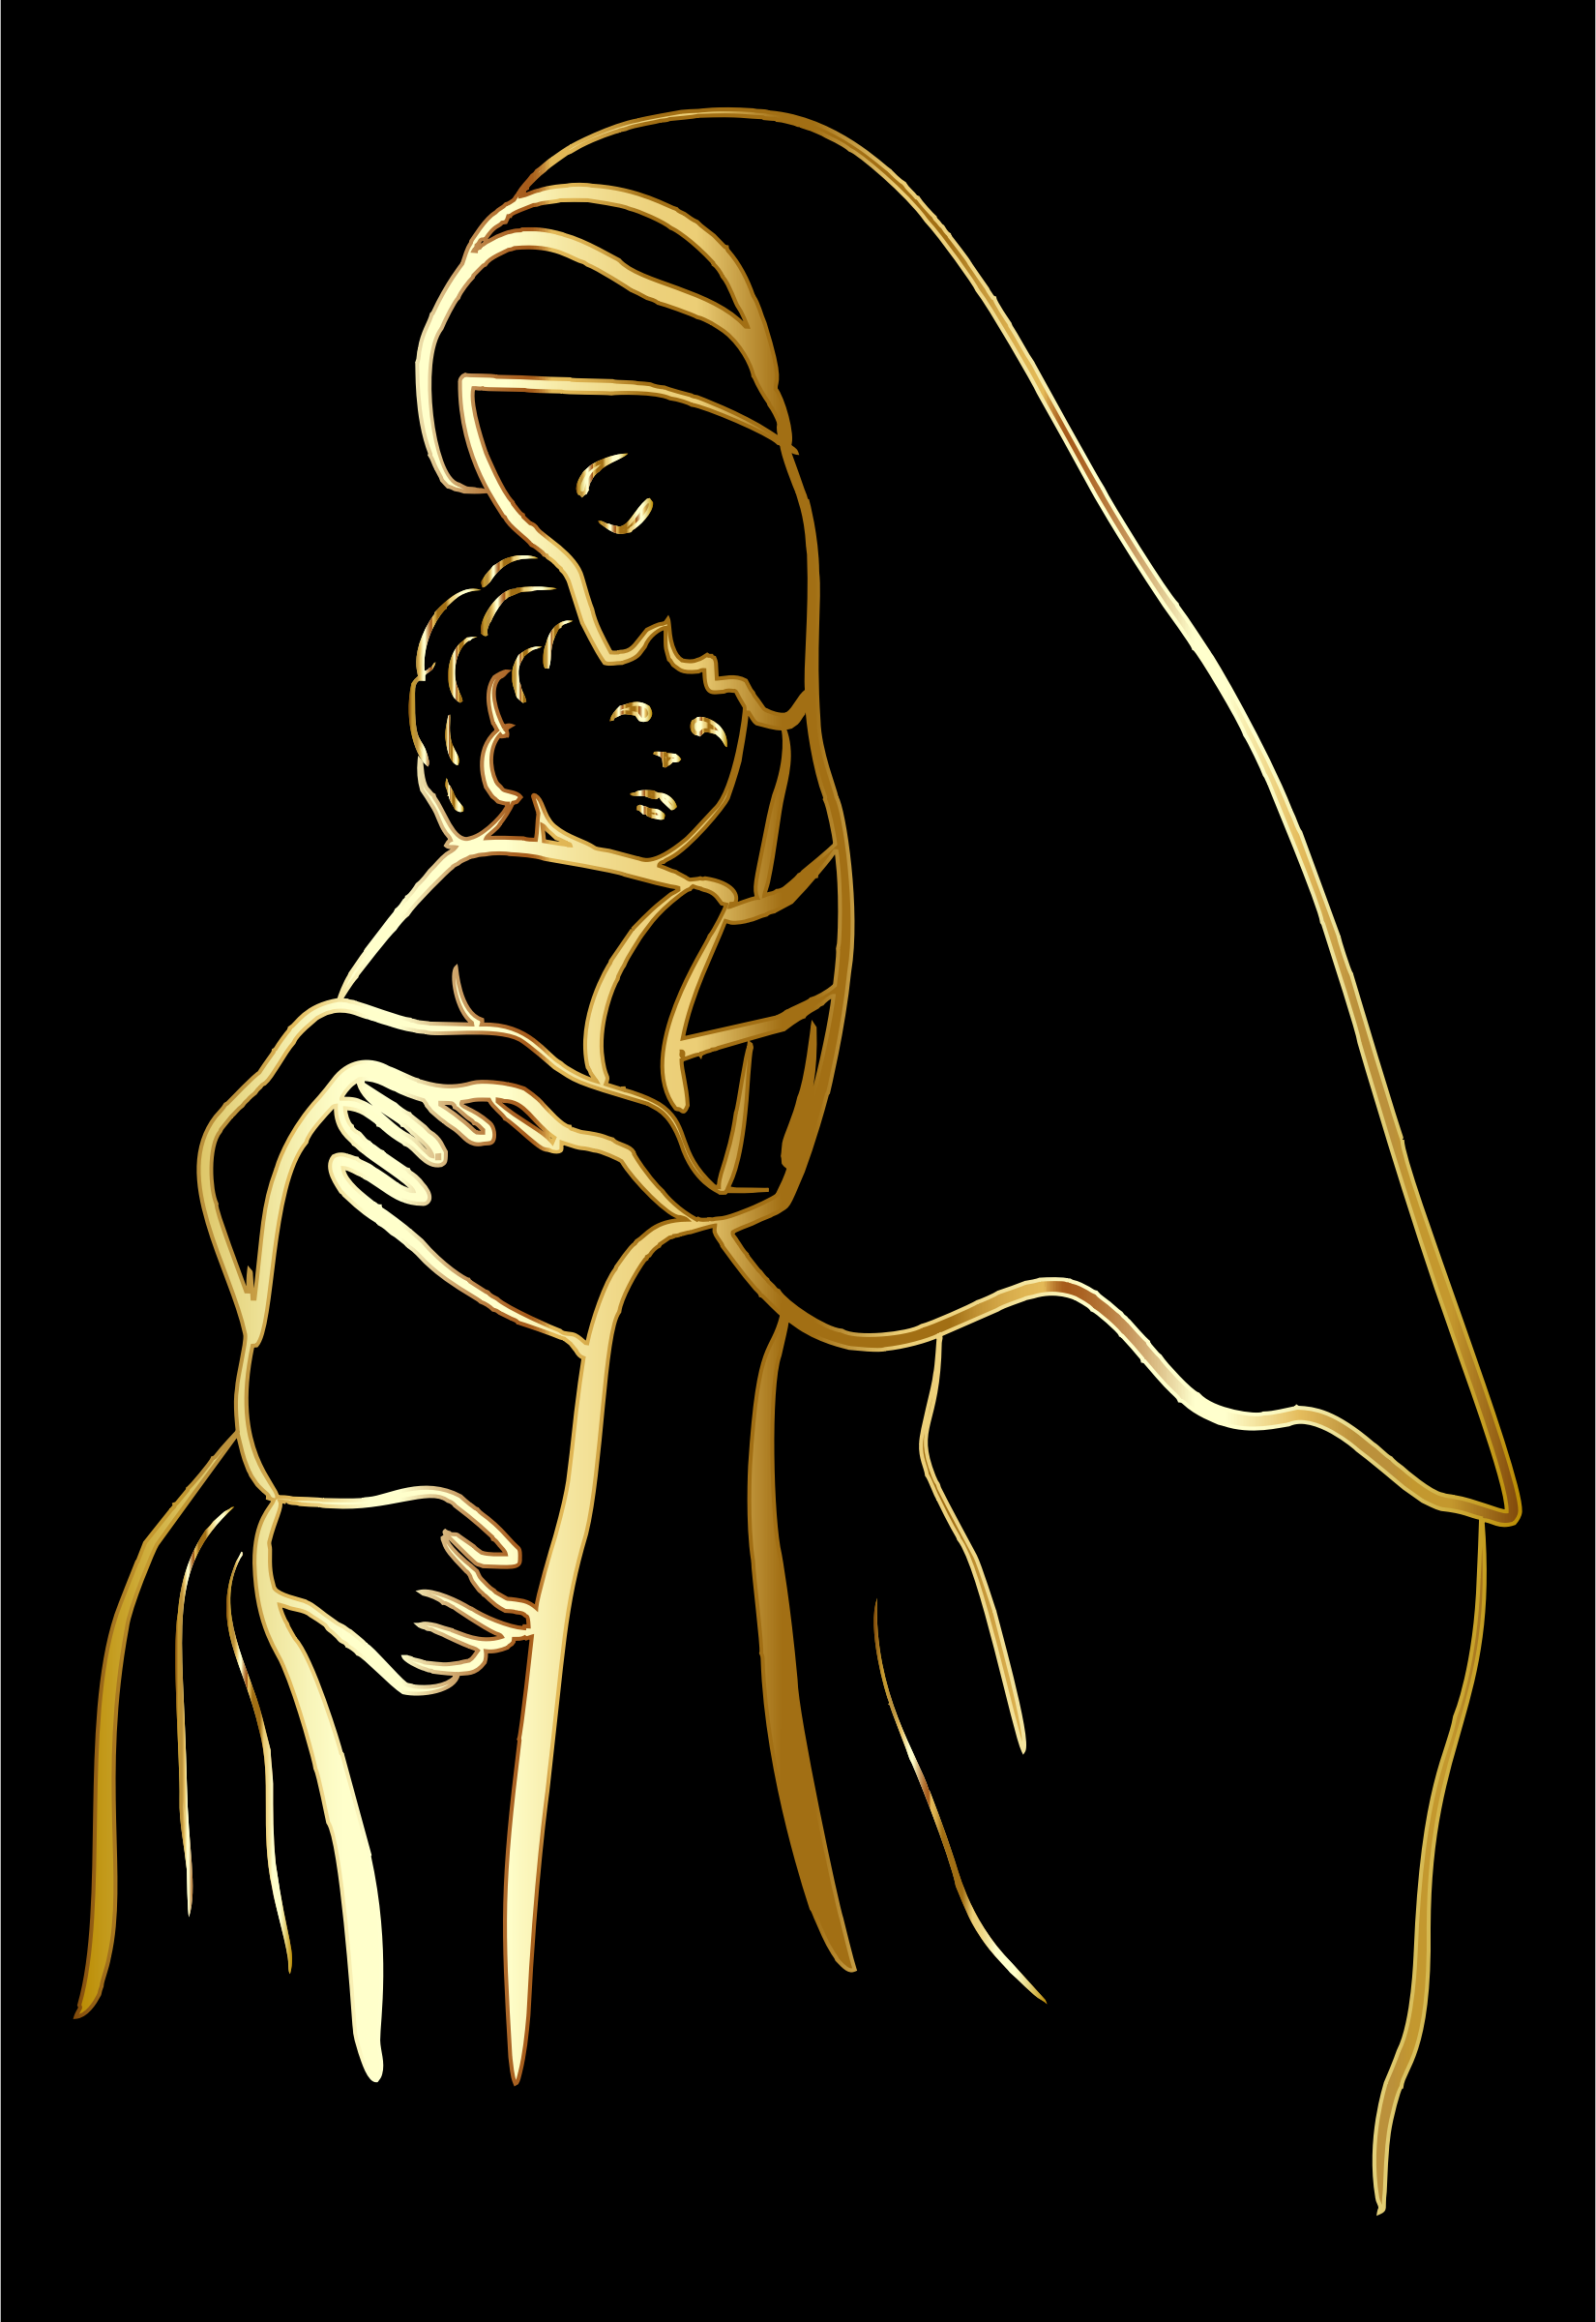 Gold Virgin Mary And Baby Jesus by GDJ